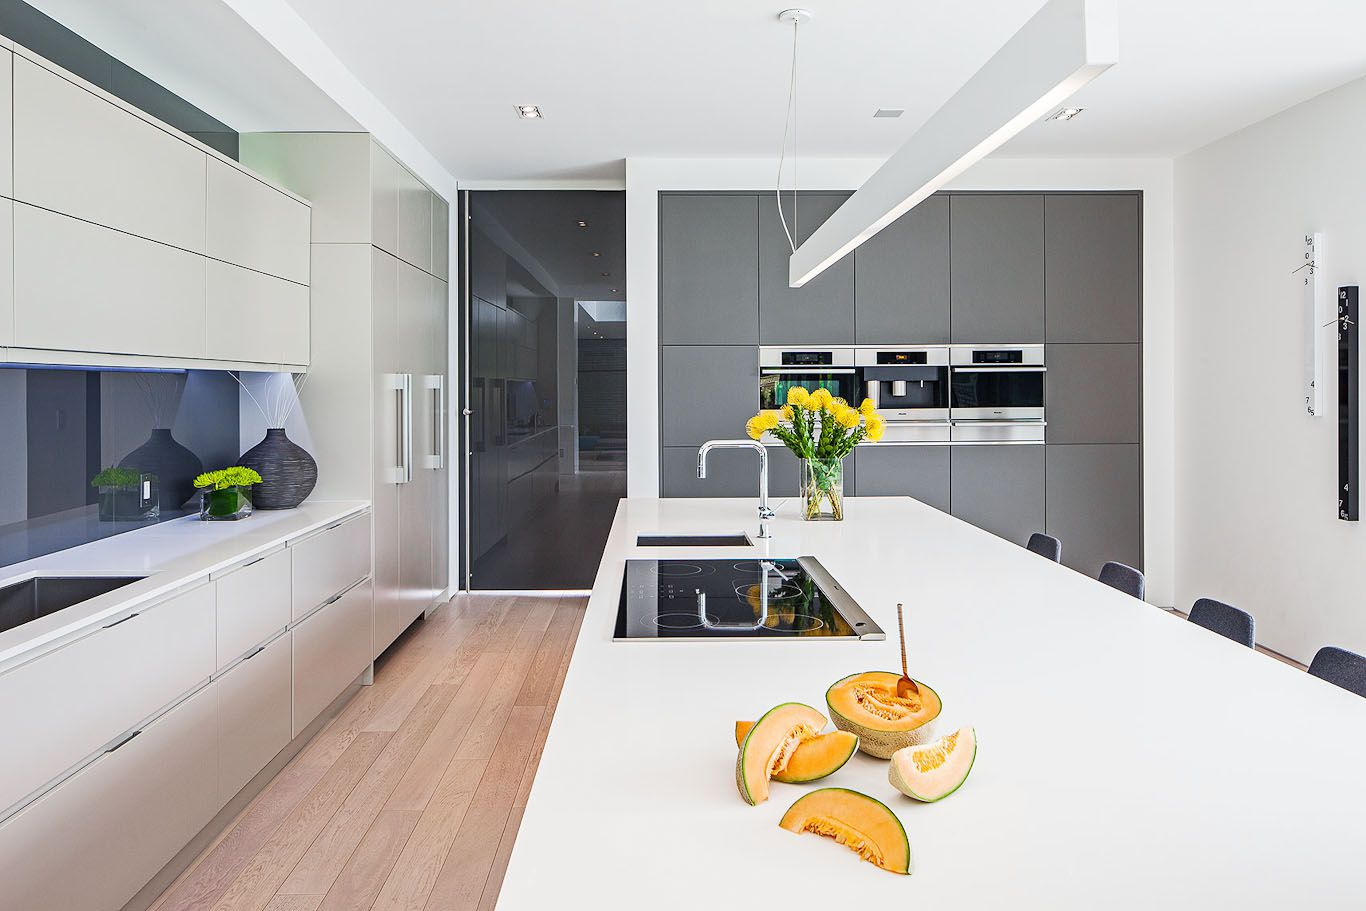 Ceiling Designs 2016: Full Review of the New Trends. Pendant lamp and the ceiling in the white-trimmed kitchen of minimalistic style